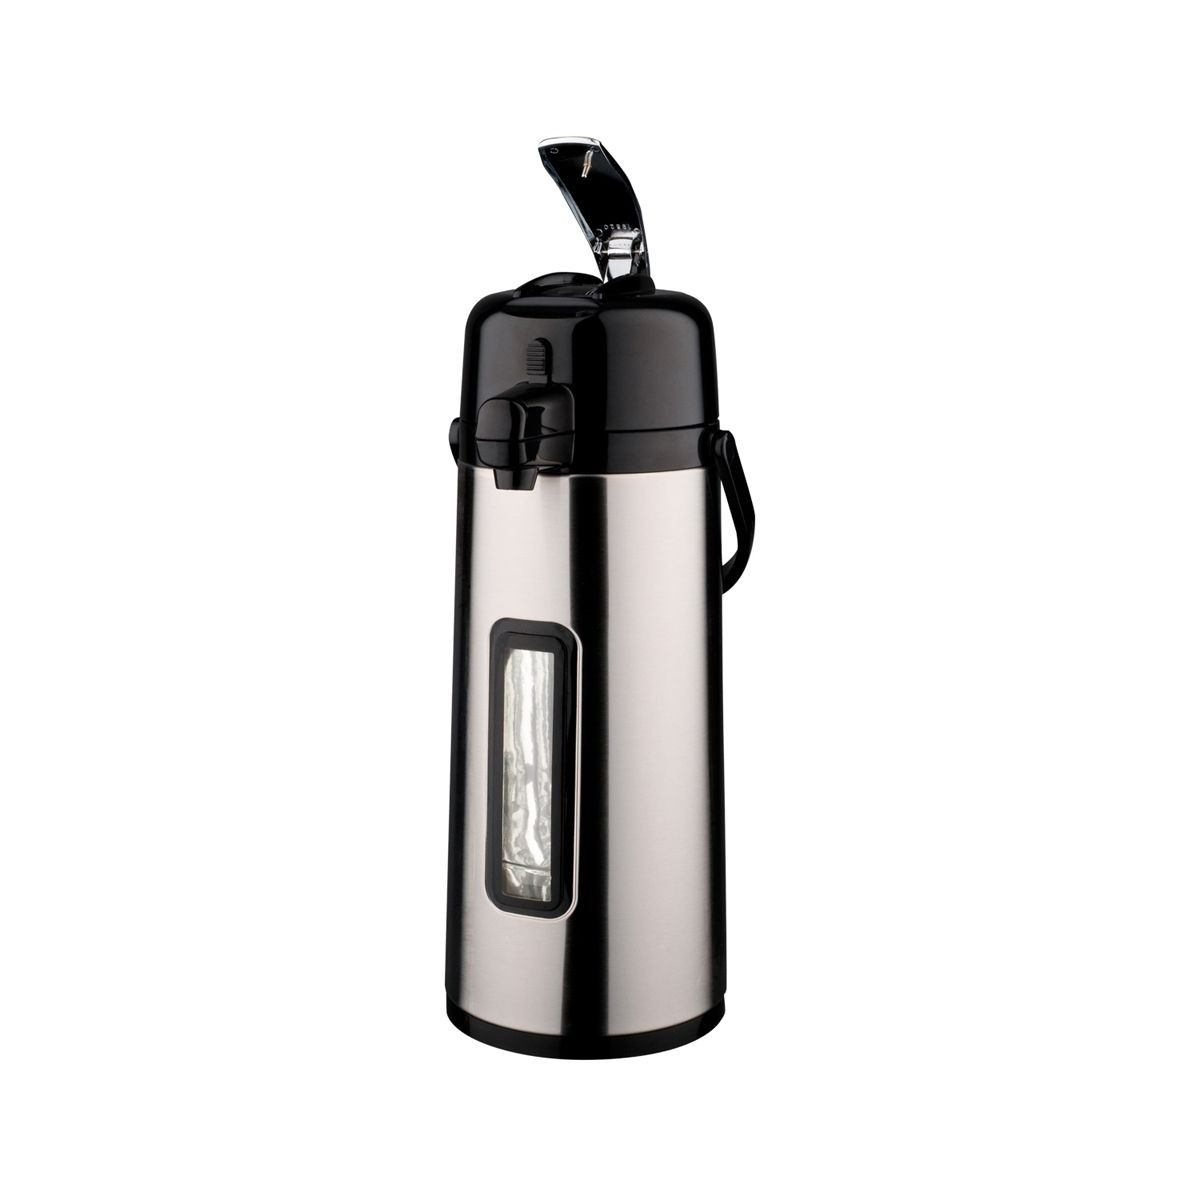 Service Ideas ECAL22SG Eco-Air Glass-Lined Airpot with Sight Glass 2.2 Liter